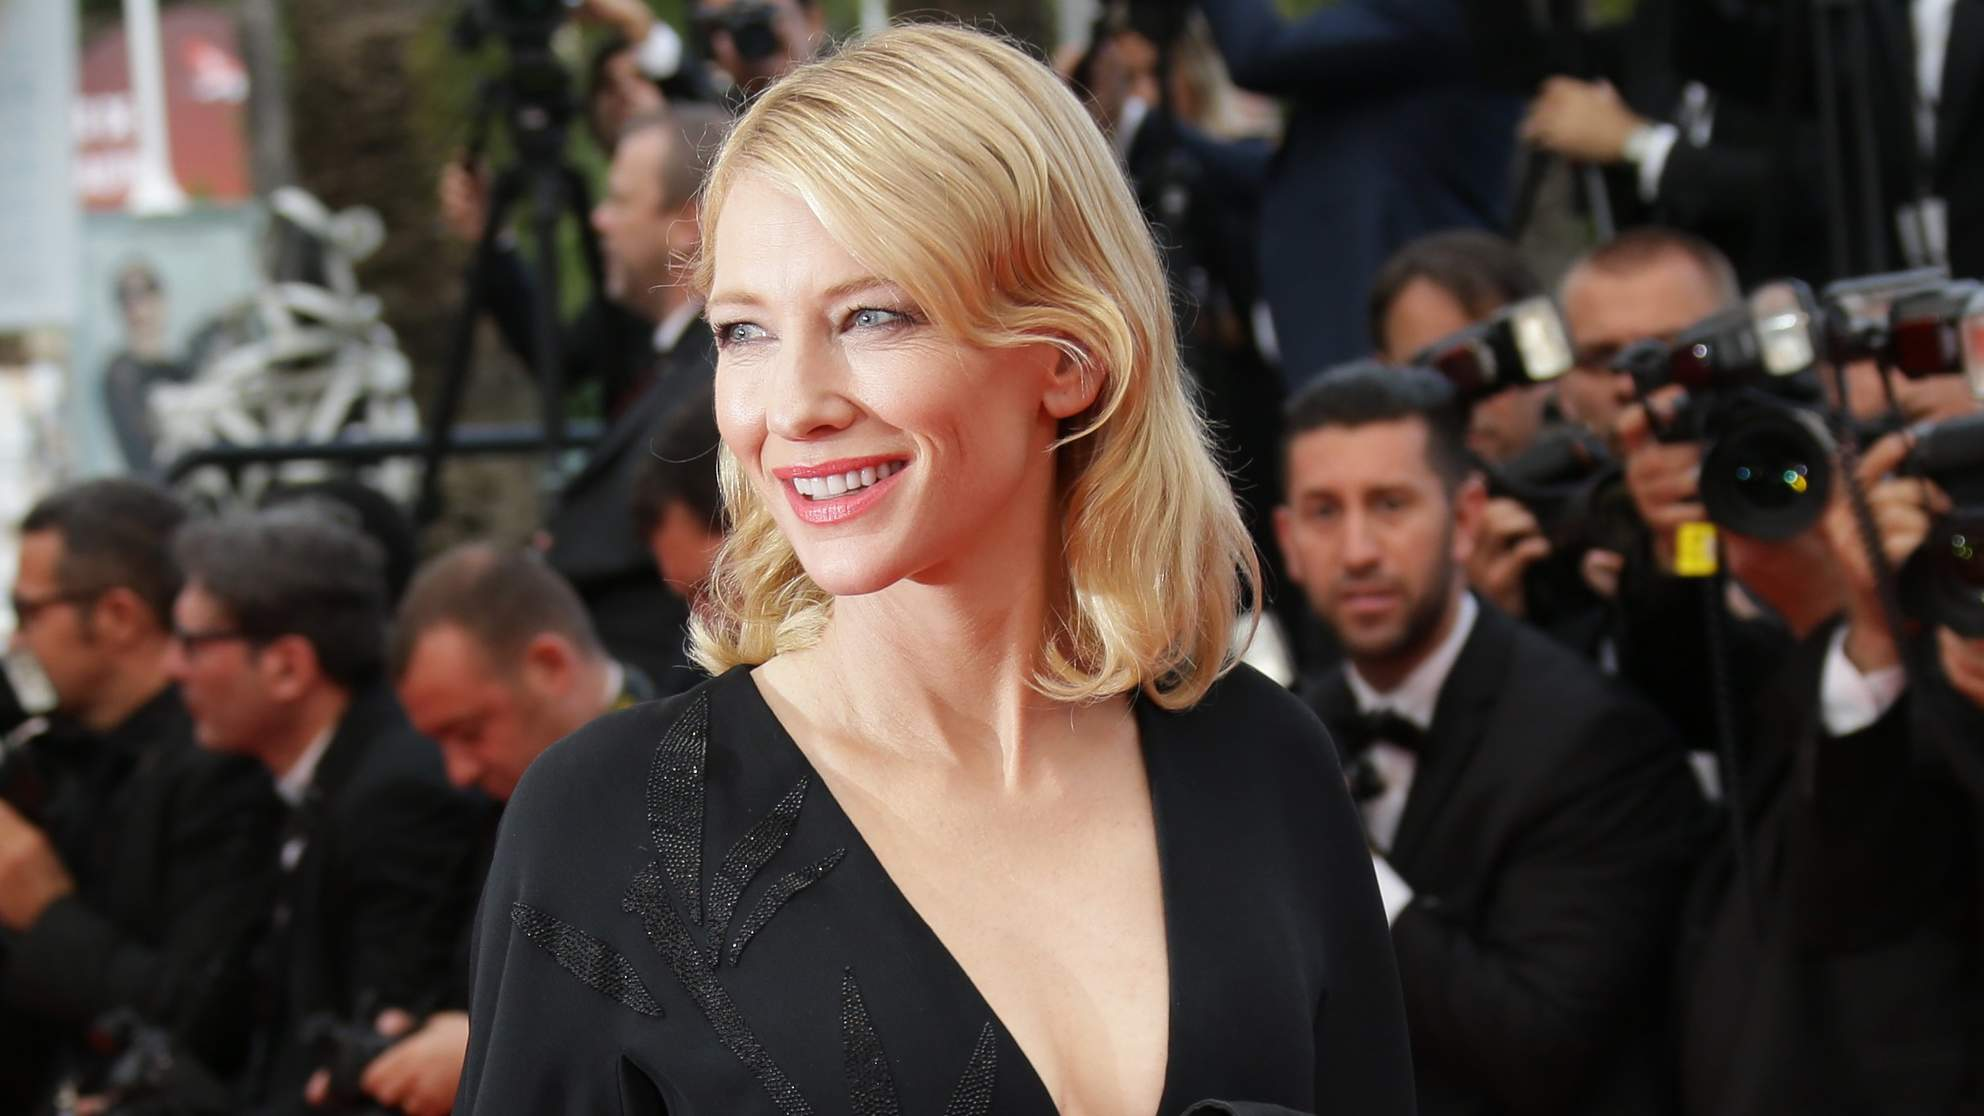 Cate Blanchett poses for photographers upon arrival for the screening of the film Sicario at the 68th international film festival, Cannes, southern France on May 19, 2015.